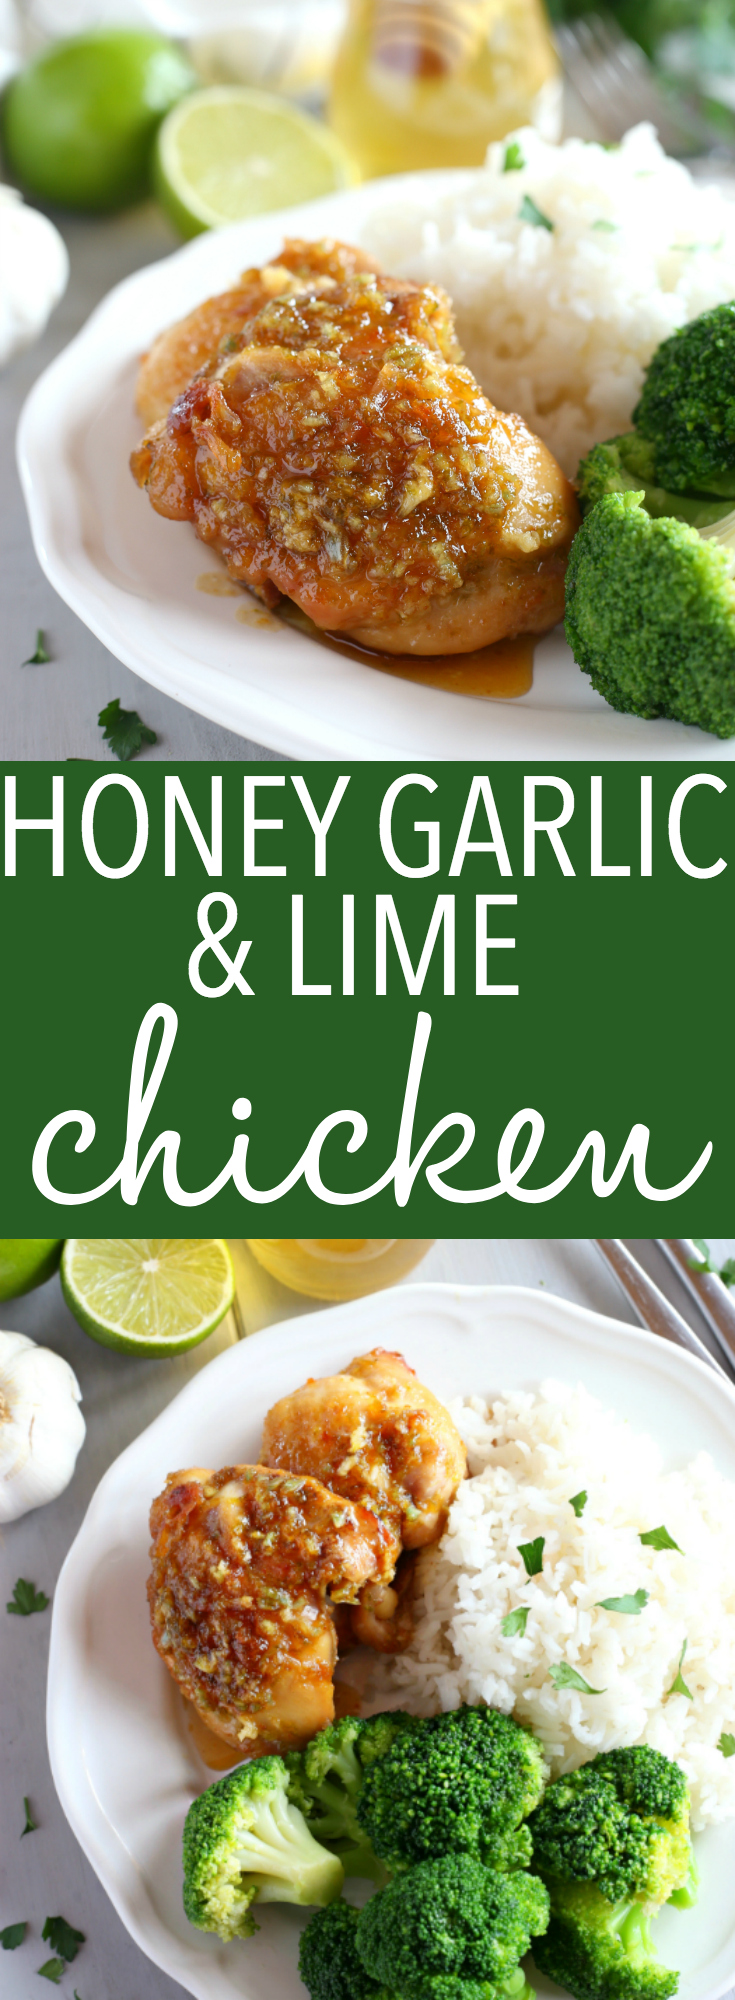 This Honey Garlic Lime Chicken is an easy weeknight meal recipe featuring tender chicken thighs cooked in a sweet lime and garlic sauce! Just a few simple ingredients and you're on your way to a delicious family meal that's so easy to make! Recipe from thebusybaker.ca! #easyhoneygarlicchicken #easychickenrecipe #honeygarlicsauce via @busybakerblog